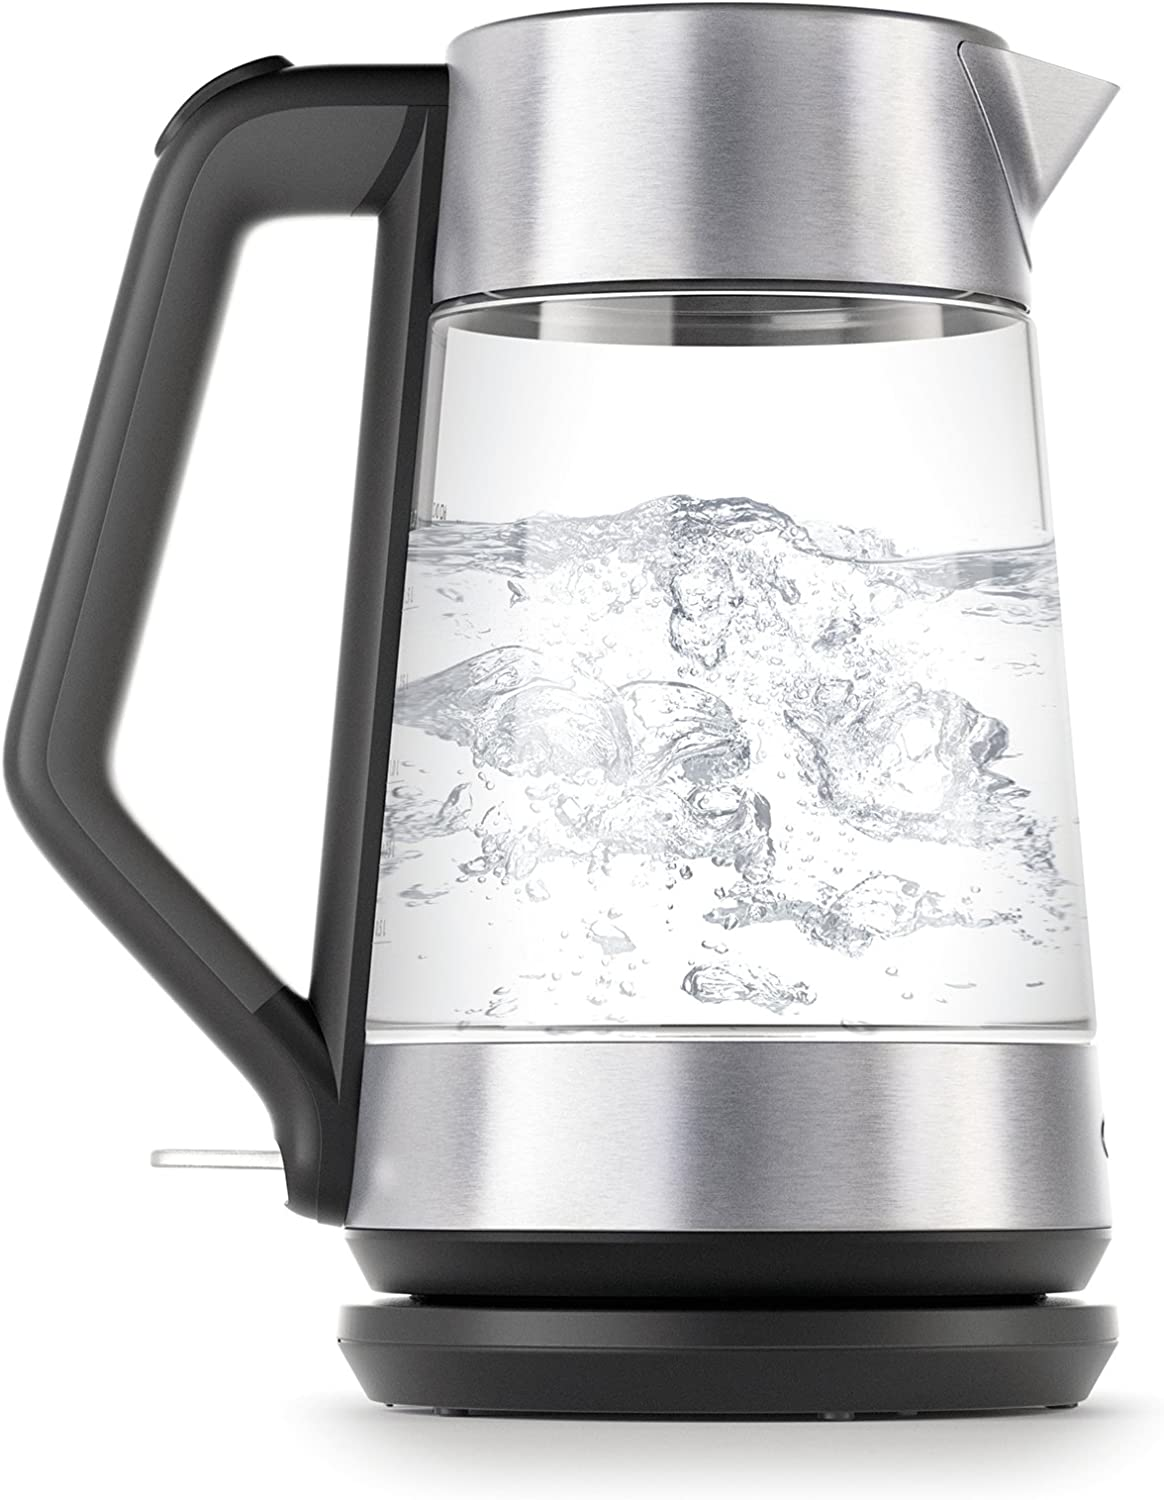 OXO 7.4-Cup Stainless Steel Cordless Electric Kettle